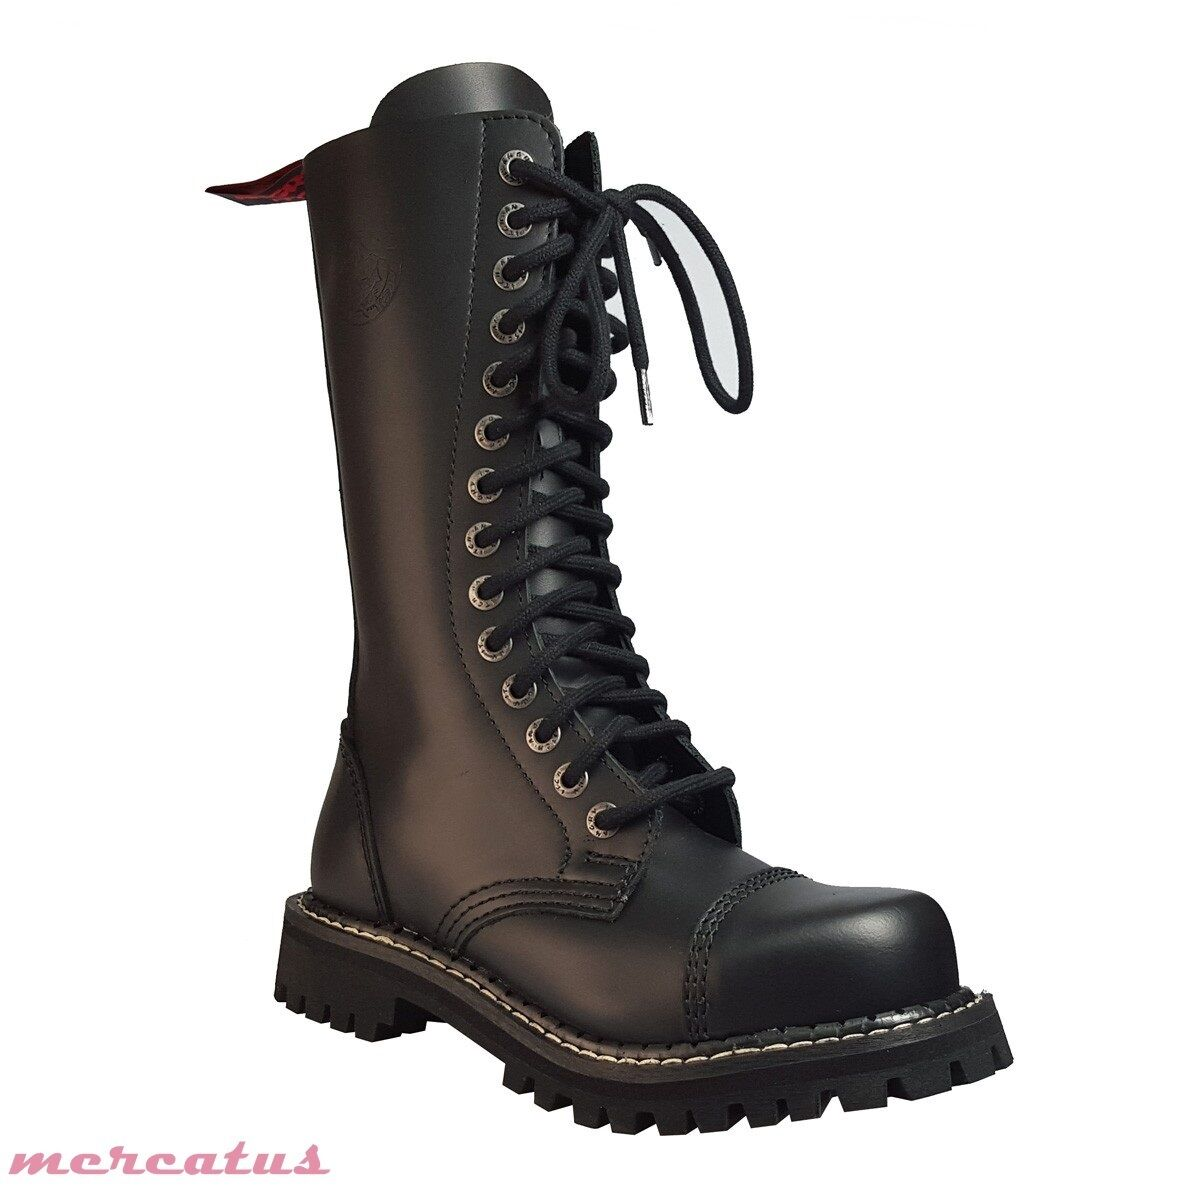 ANGRY ITCH - 14-Loch Gothic Punk Army Ranger Ranger Ranger Armee Leder Stiefel mit Stahlkappe 95a811